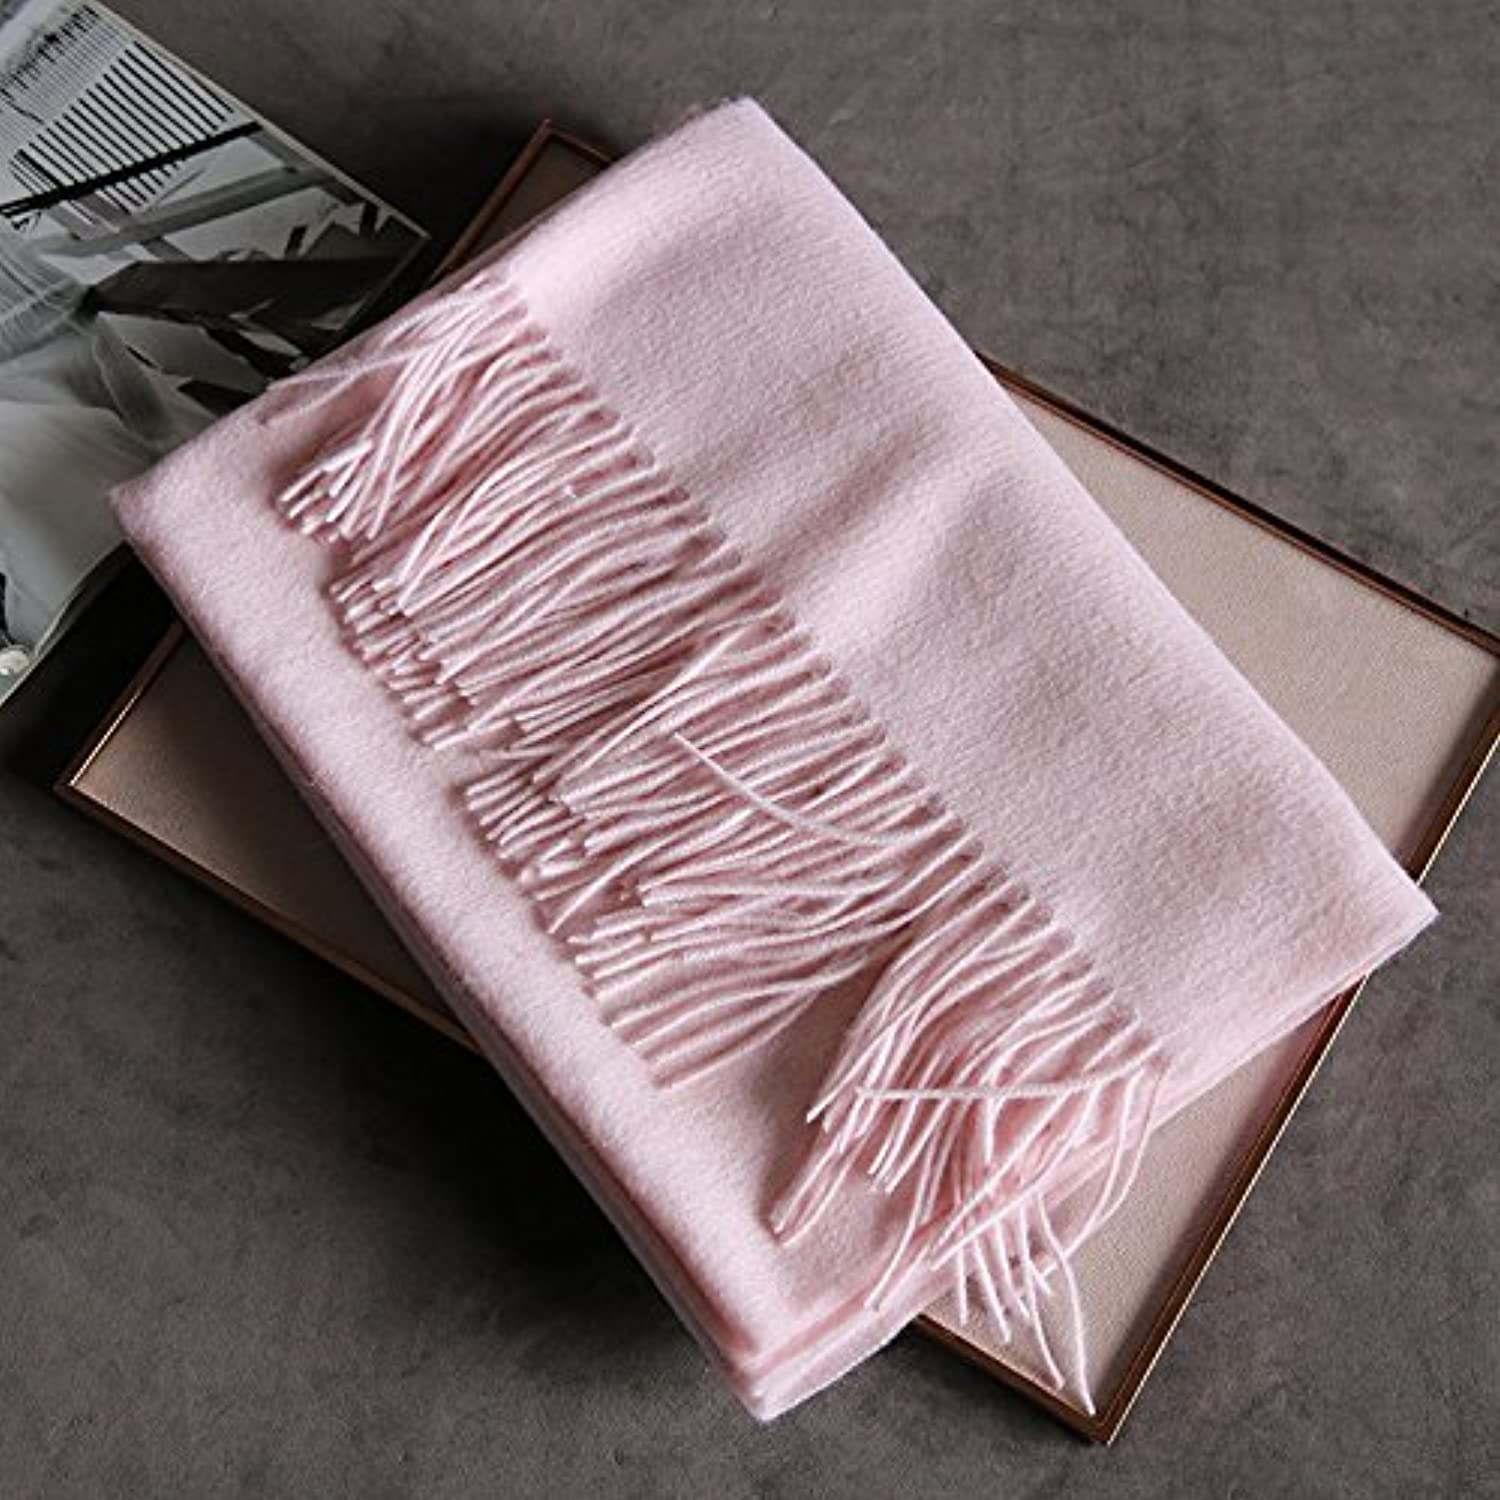 DIDIDD Scarfsimple thickening cashmere shawls ladies autumn winter scarf